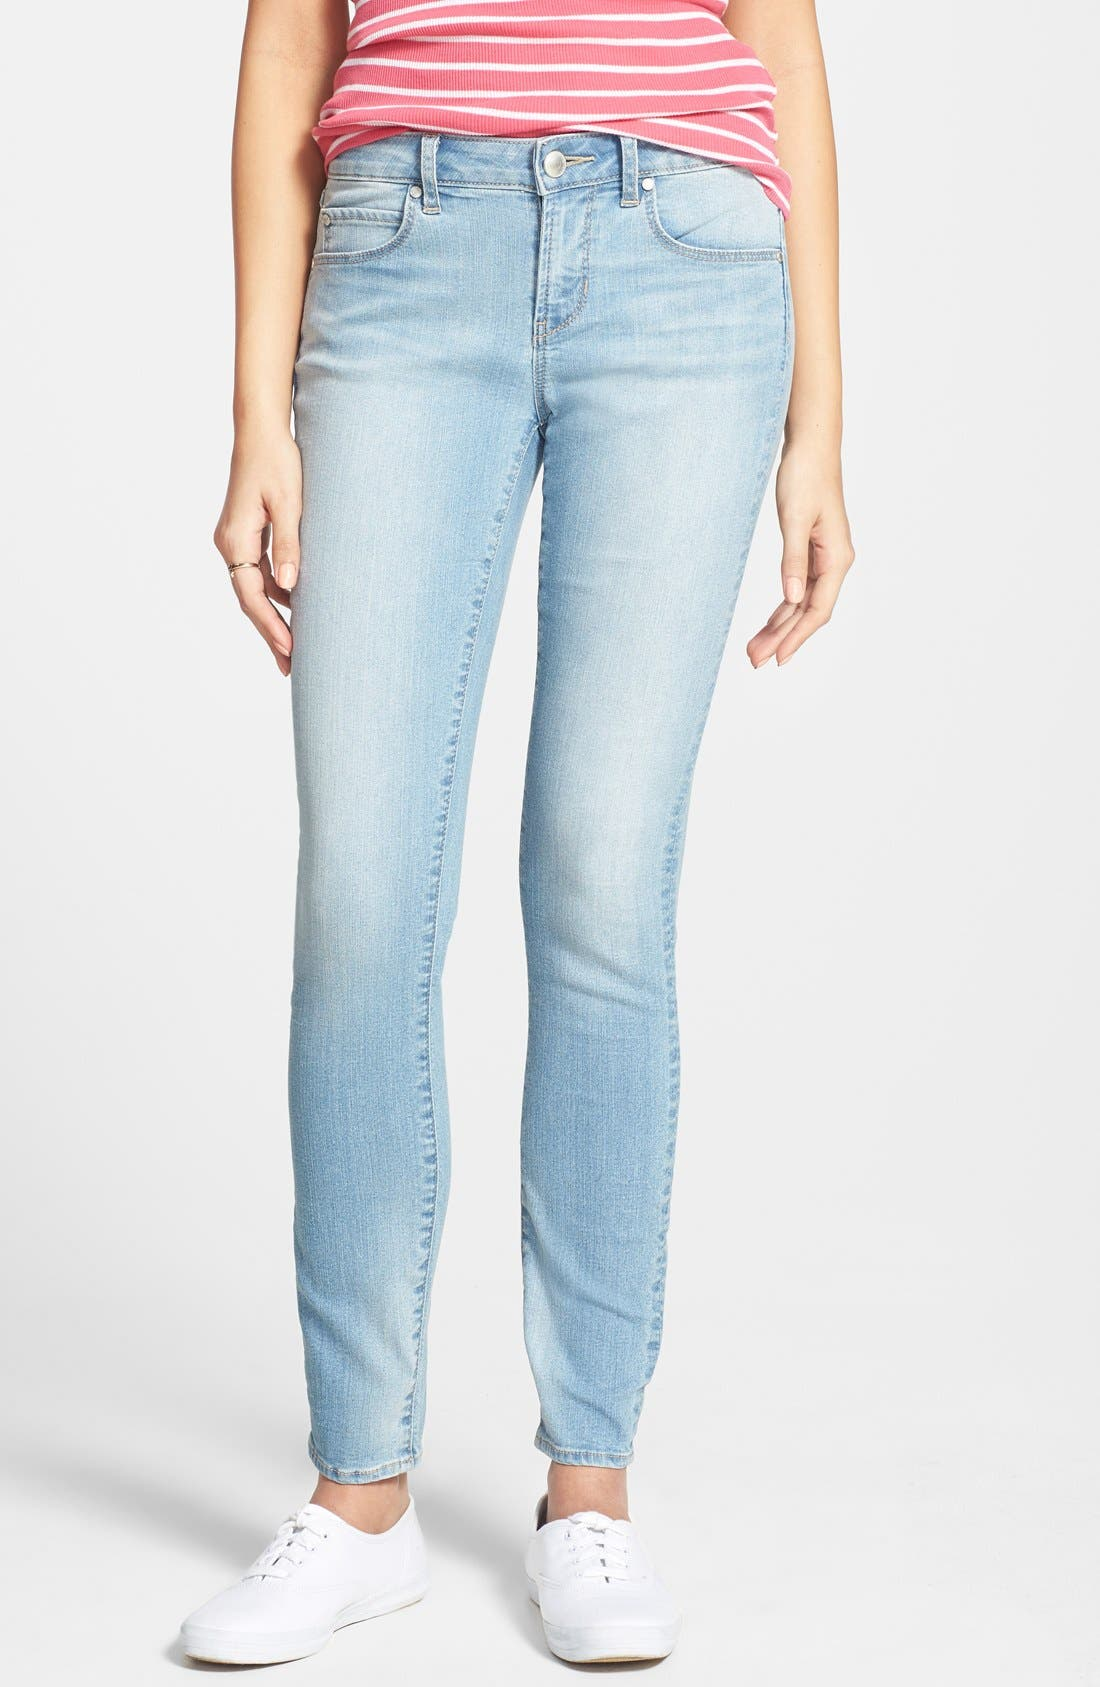 'Sarah' Skinny Jeans,                             Main thumbnail 1, color,                             Light Wash